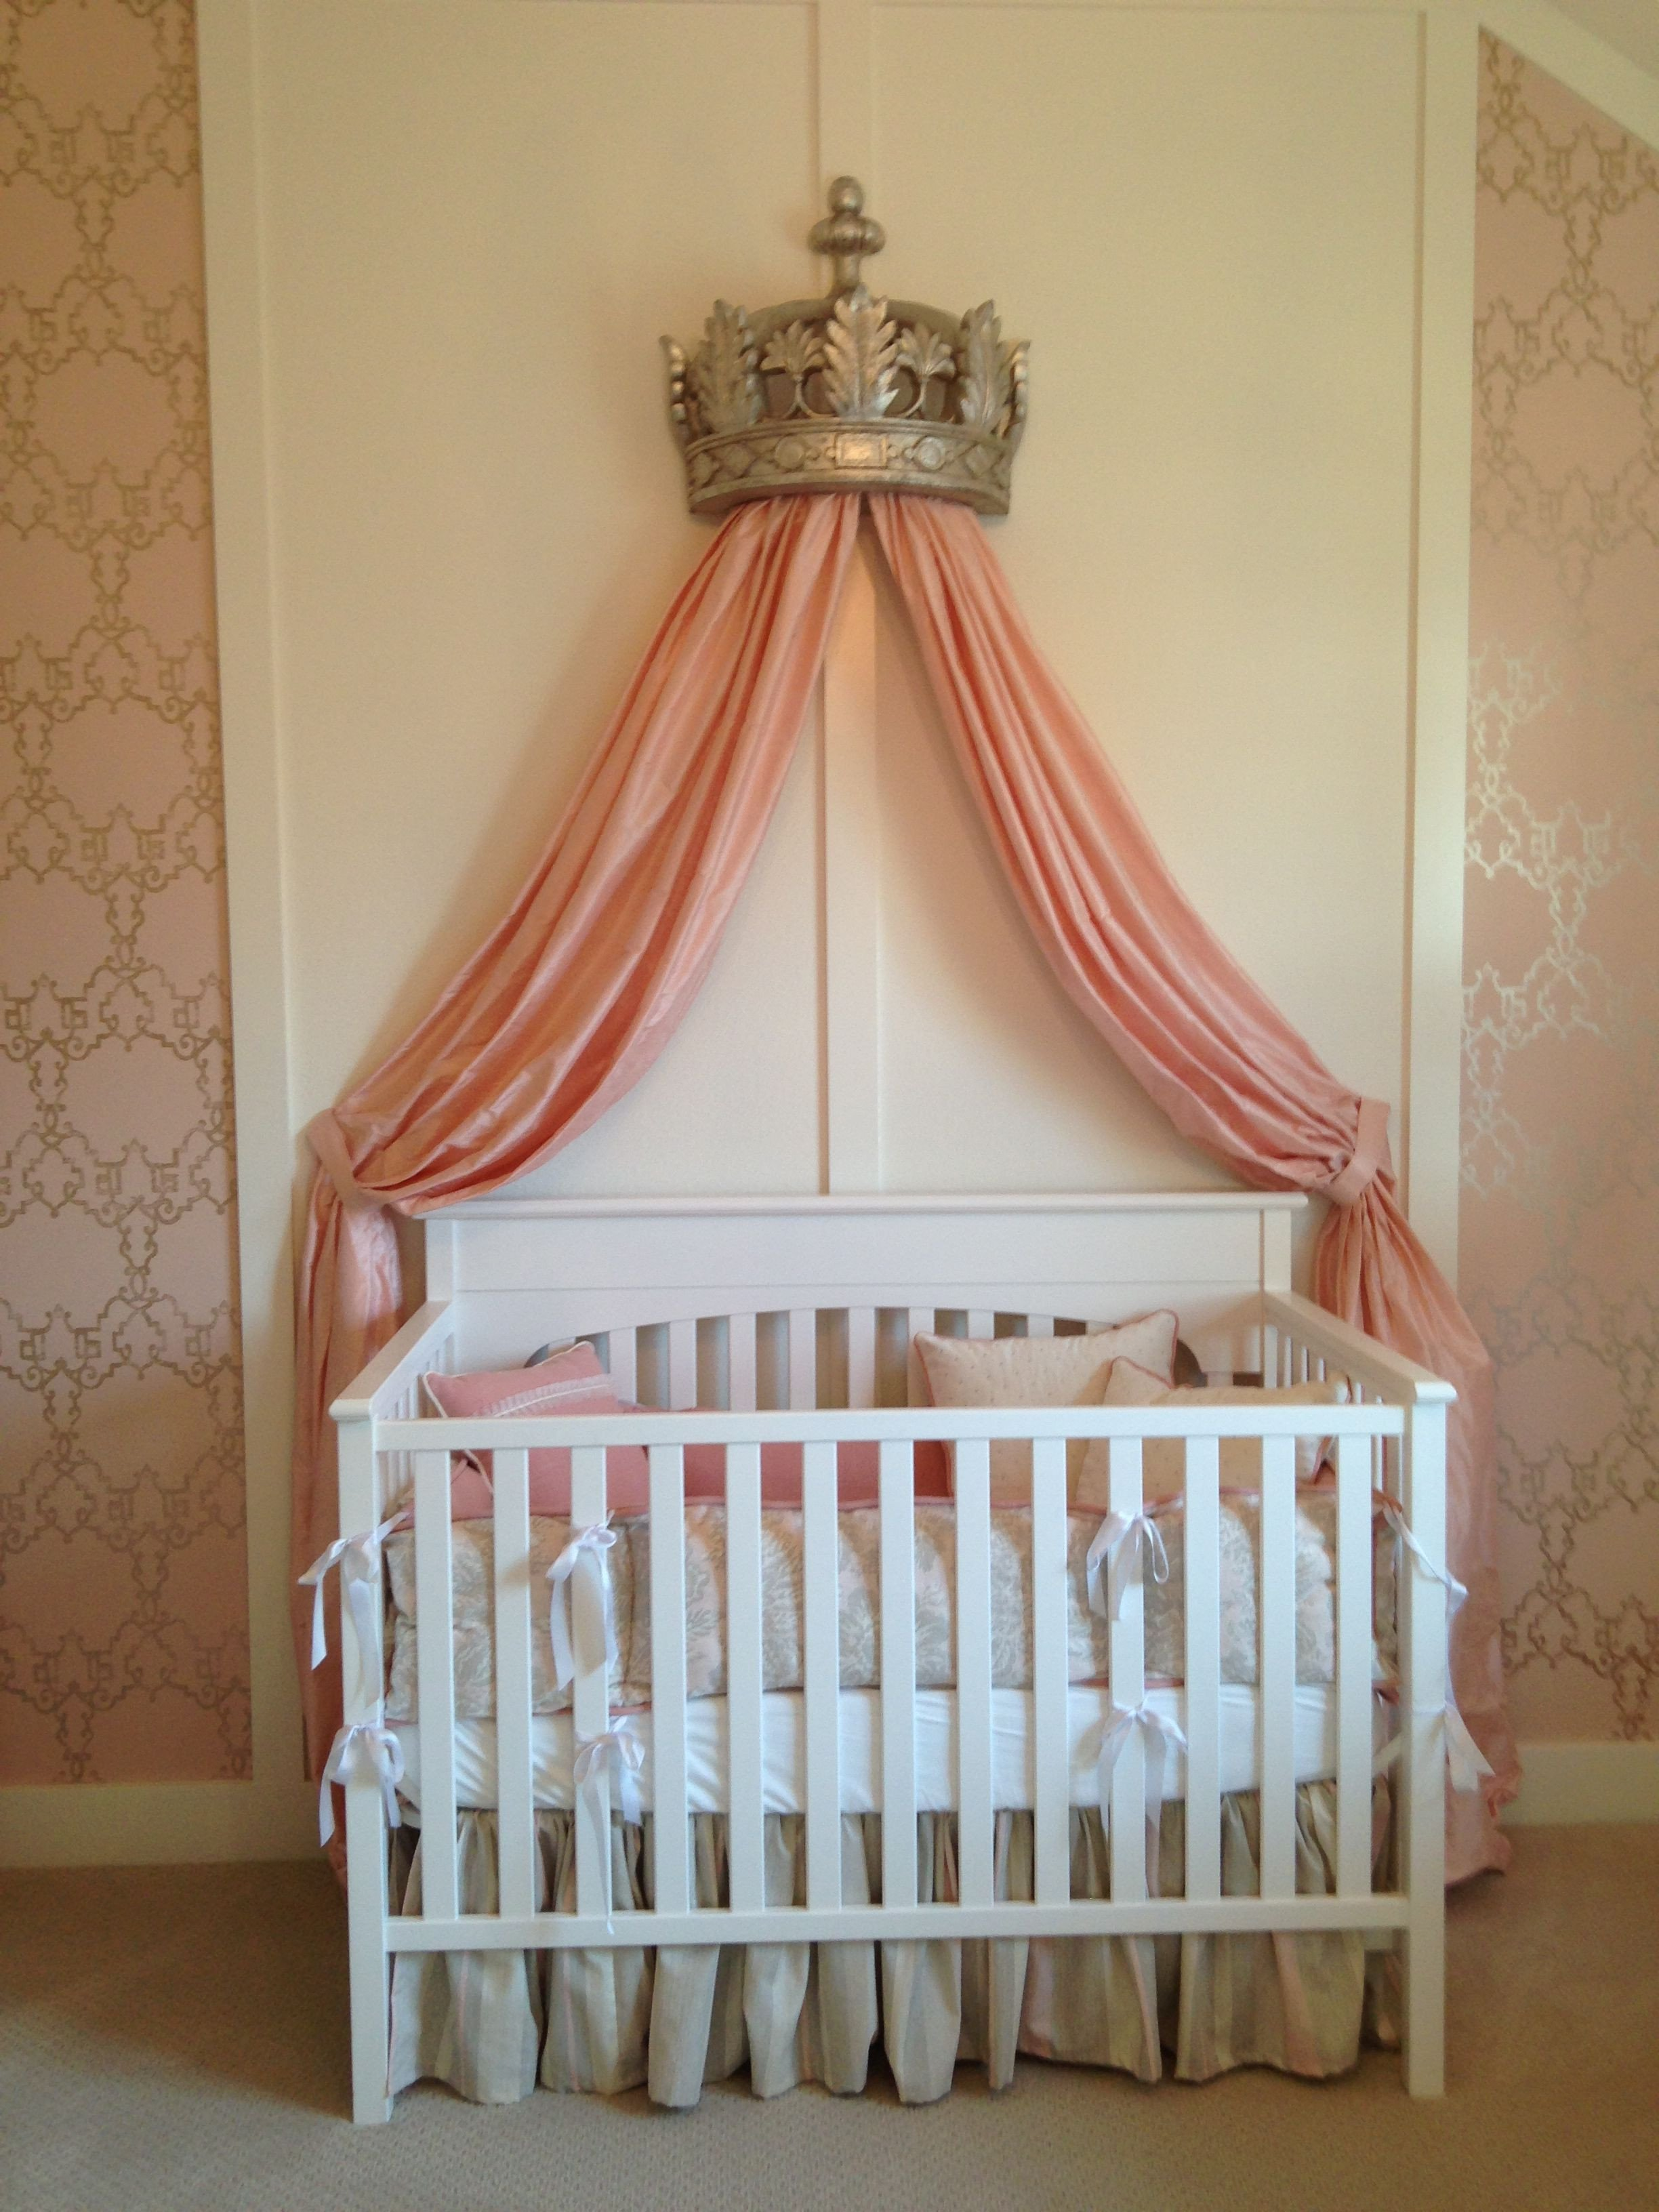 Baby Girl Bedroom Ideas Lovely Baby Girl Room Love This Crown Drape Over the Crib Fit for